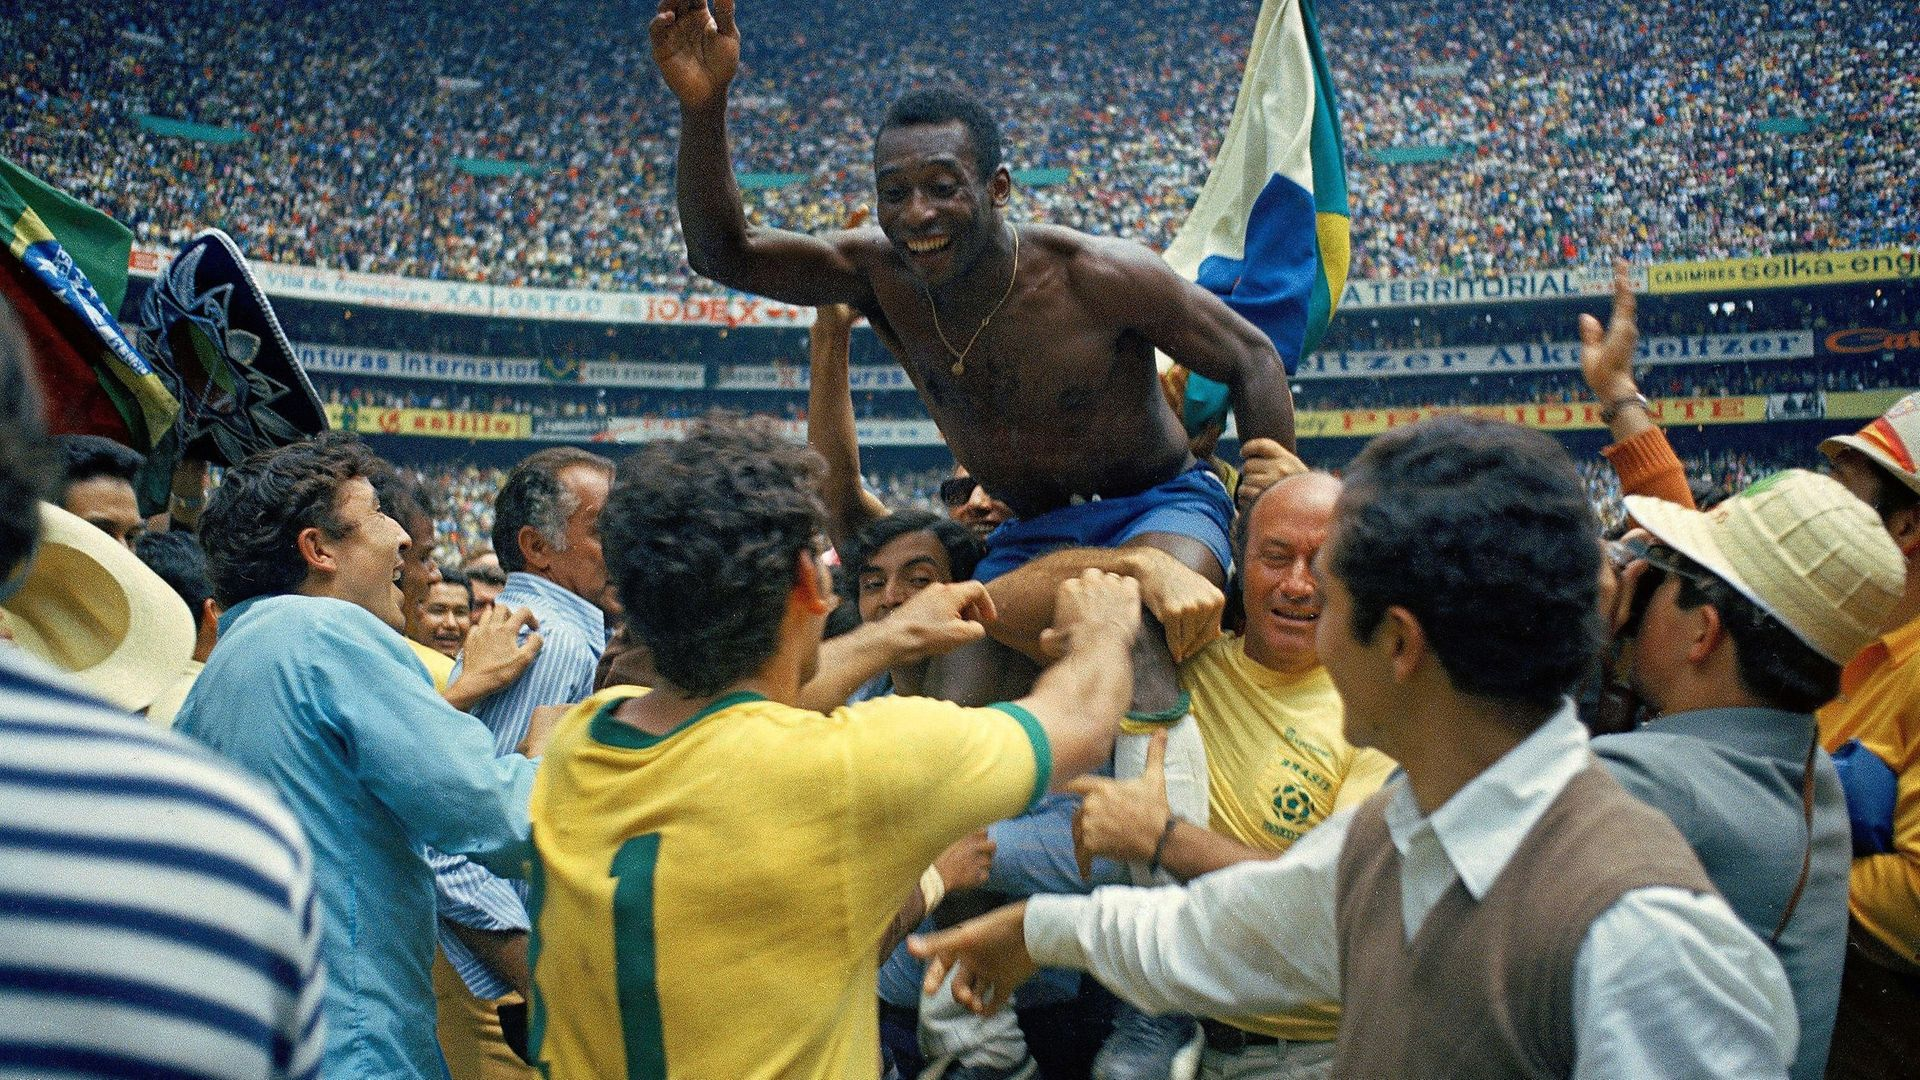 Pele is held aloft after Brazil beat Italy 4-1 to win the World Cup final on June 21st 1970. - Credit: Getty Images